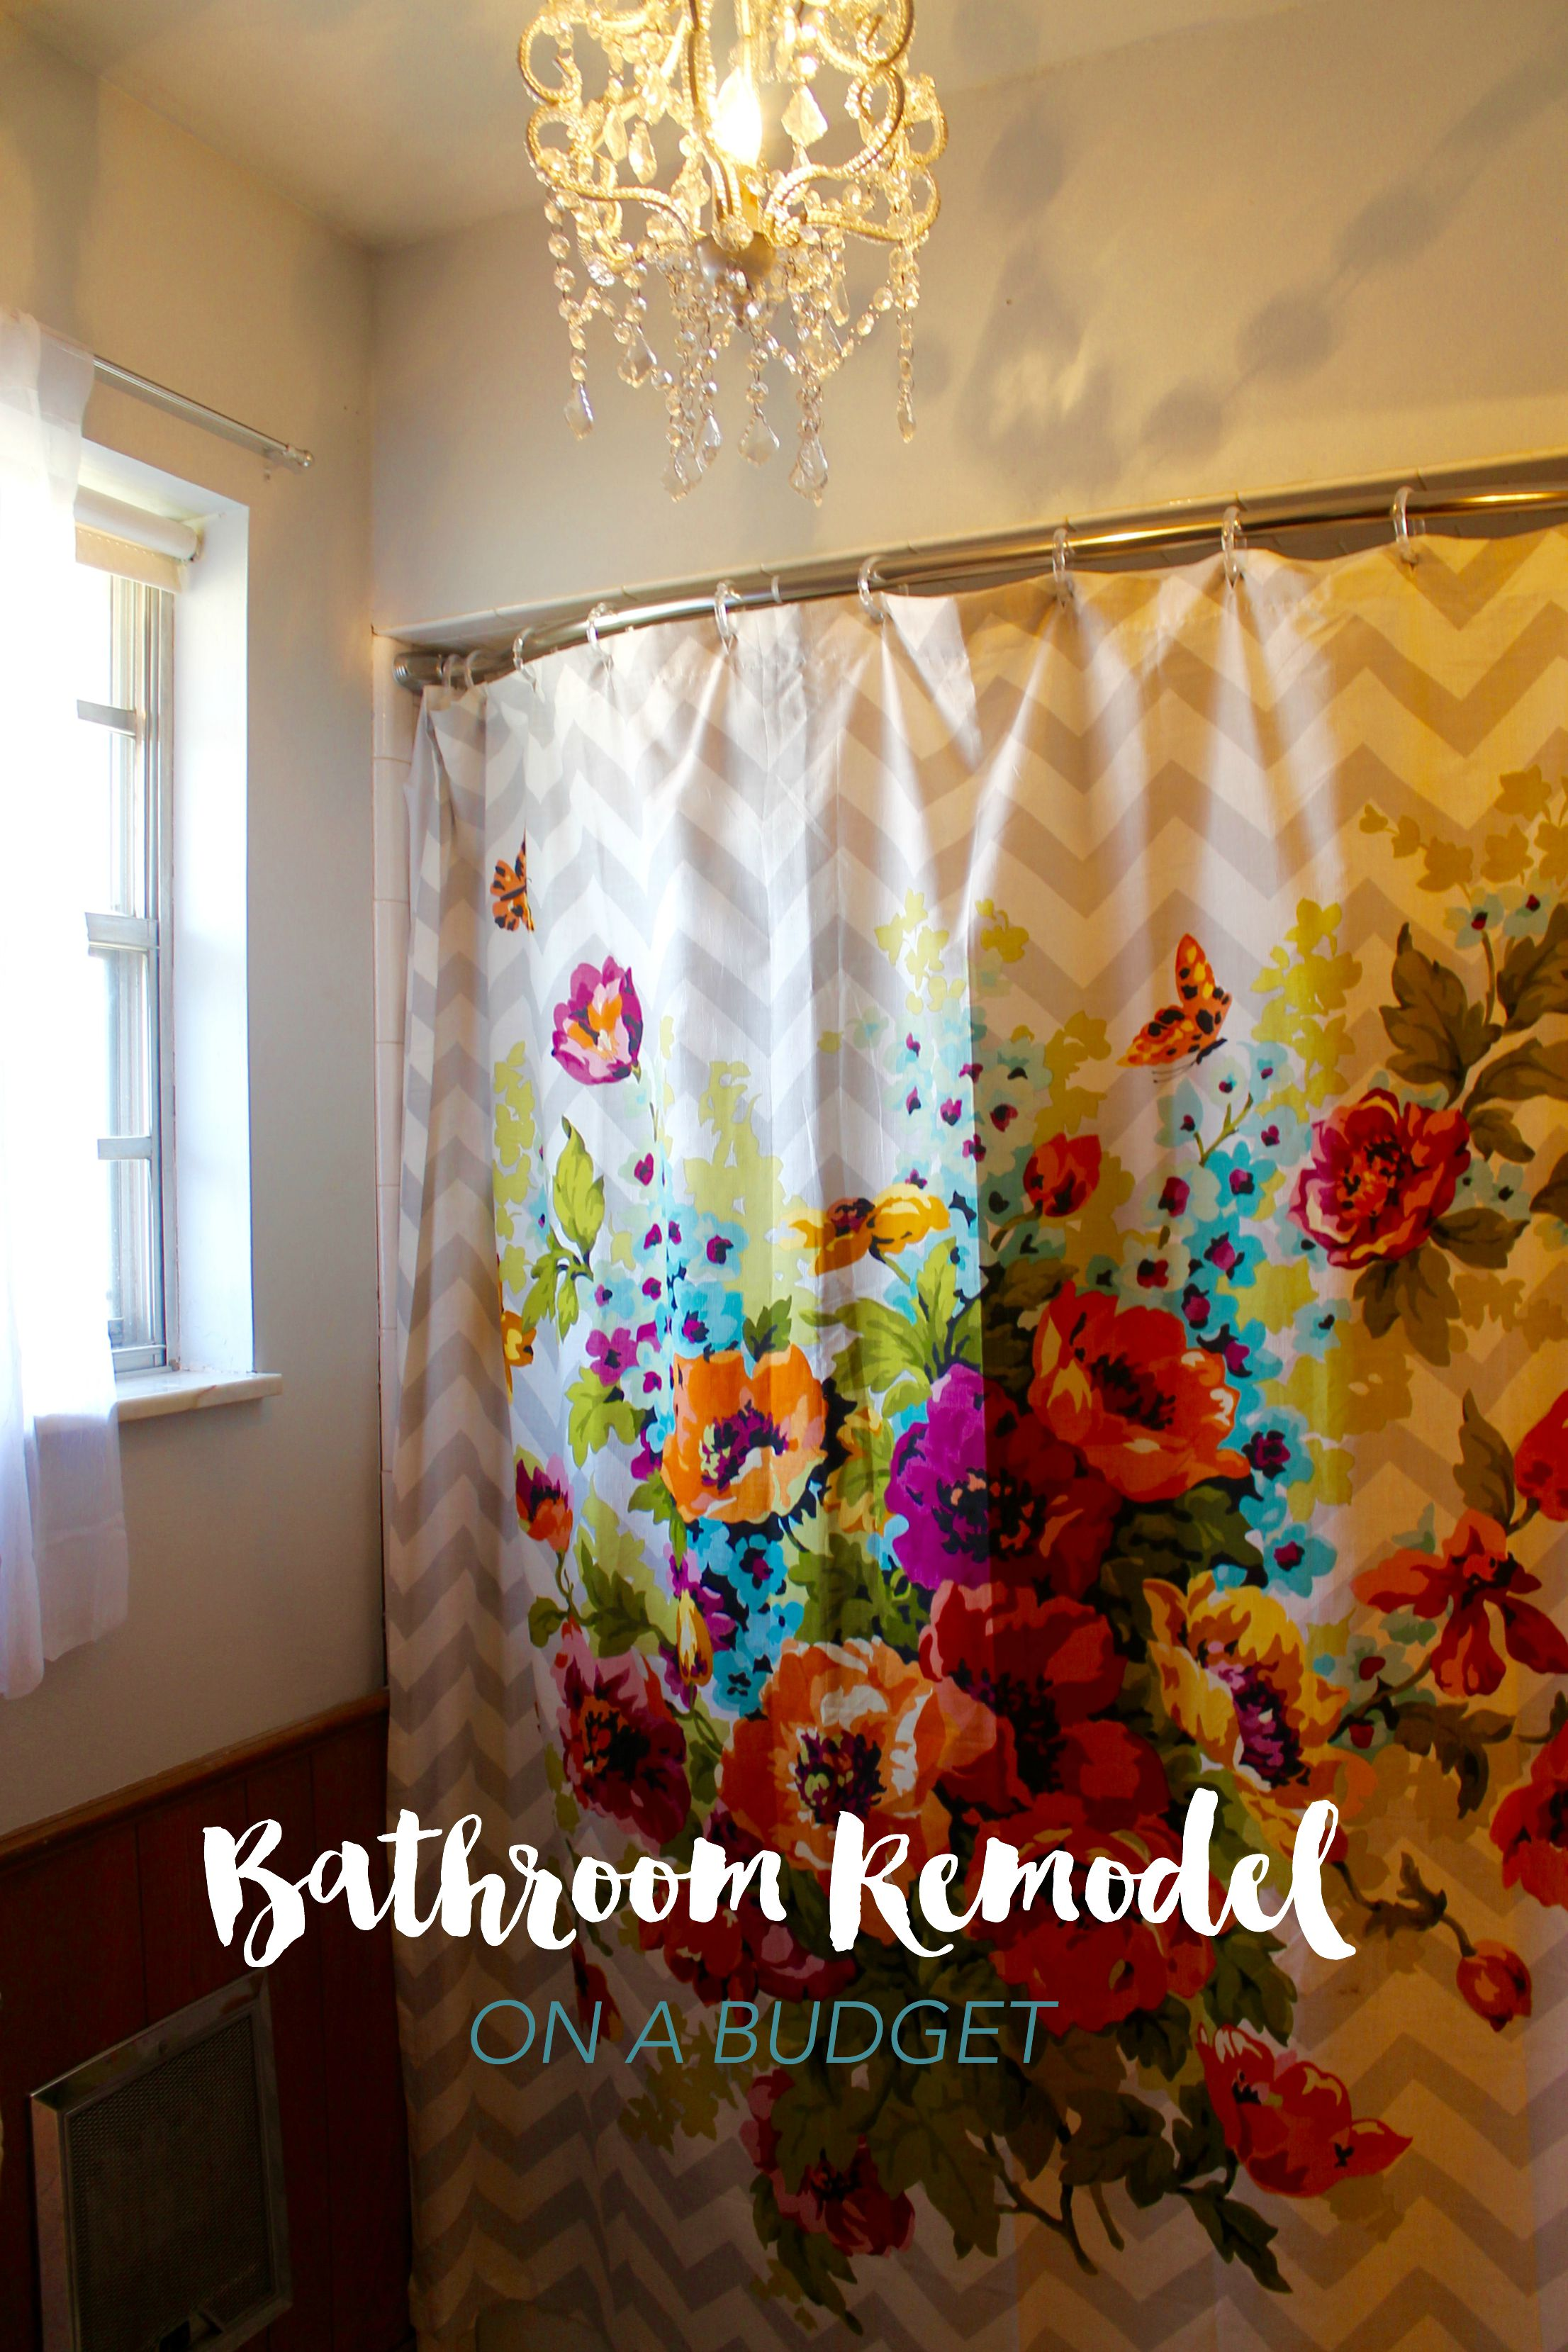 styles full and search bathroom inspired cabinets remodel tucson remodeling size kitchen okc contractors denver renovation of decor design prices designs spectacular northbrook home bath